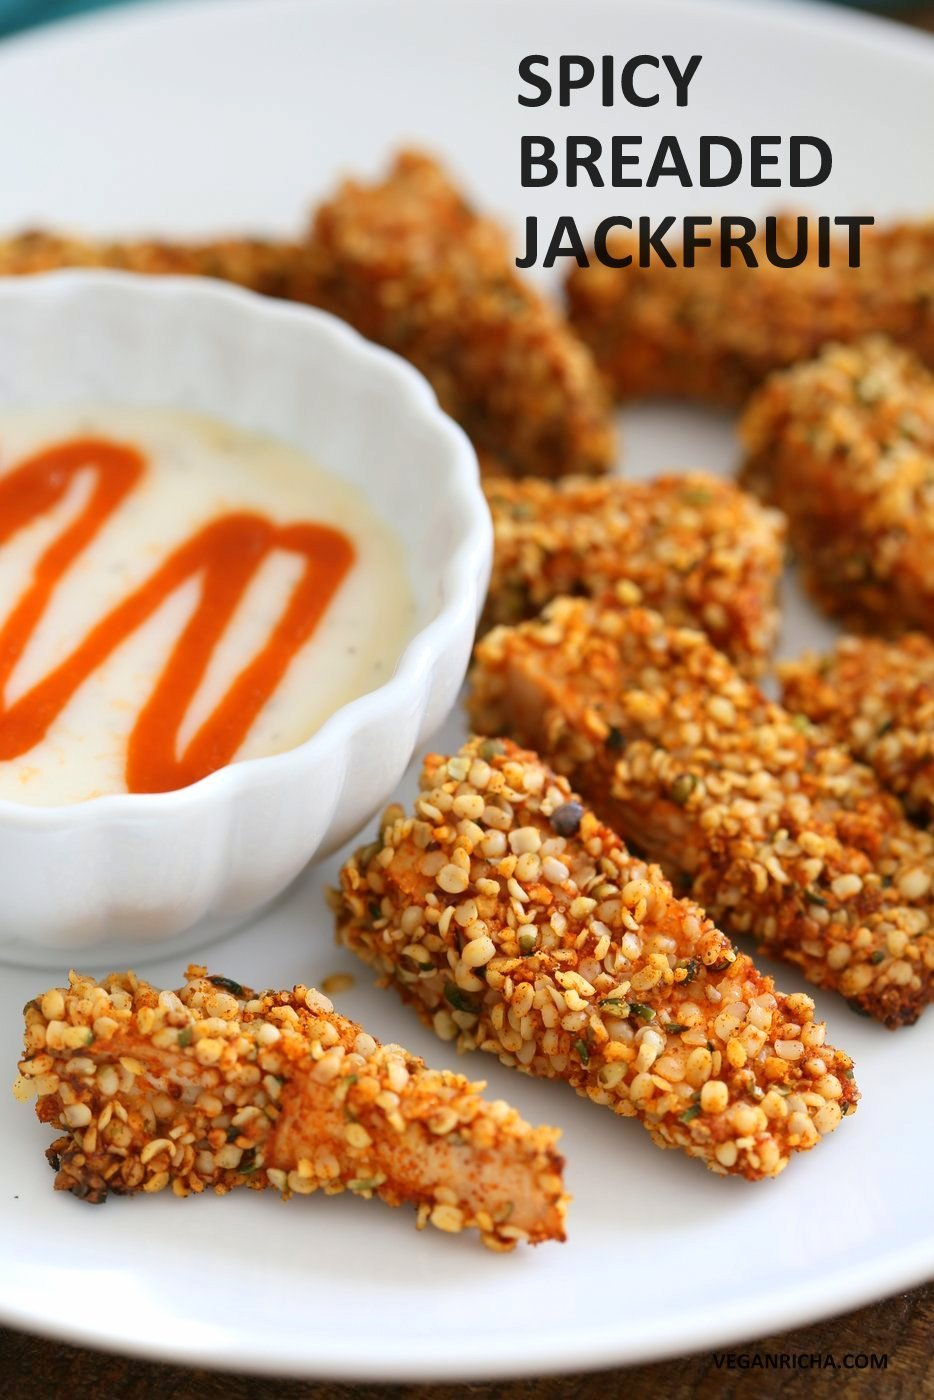 Spicy Hemp Crusted Jackfruit Nuggets. Jackfruit spiced and breaded in hemp and spice mixture and baked. Vegan Gluten-free Soy-free Recipe. | VeganRicha.com